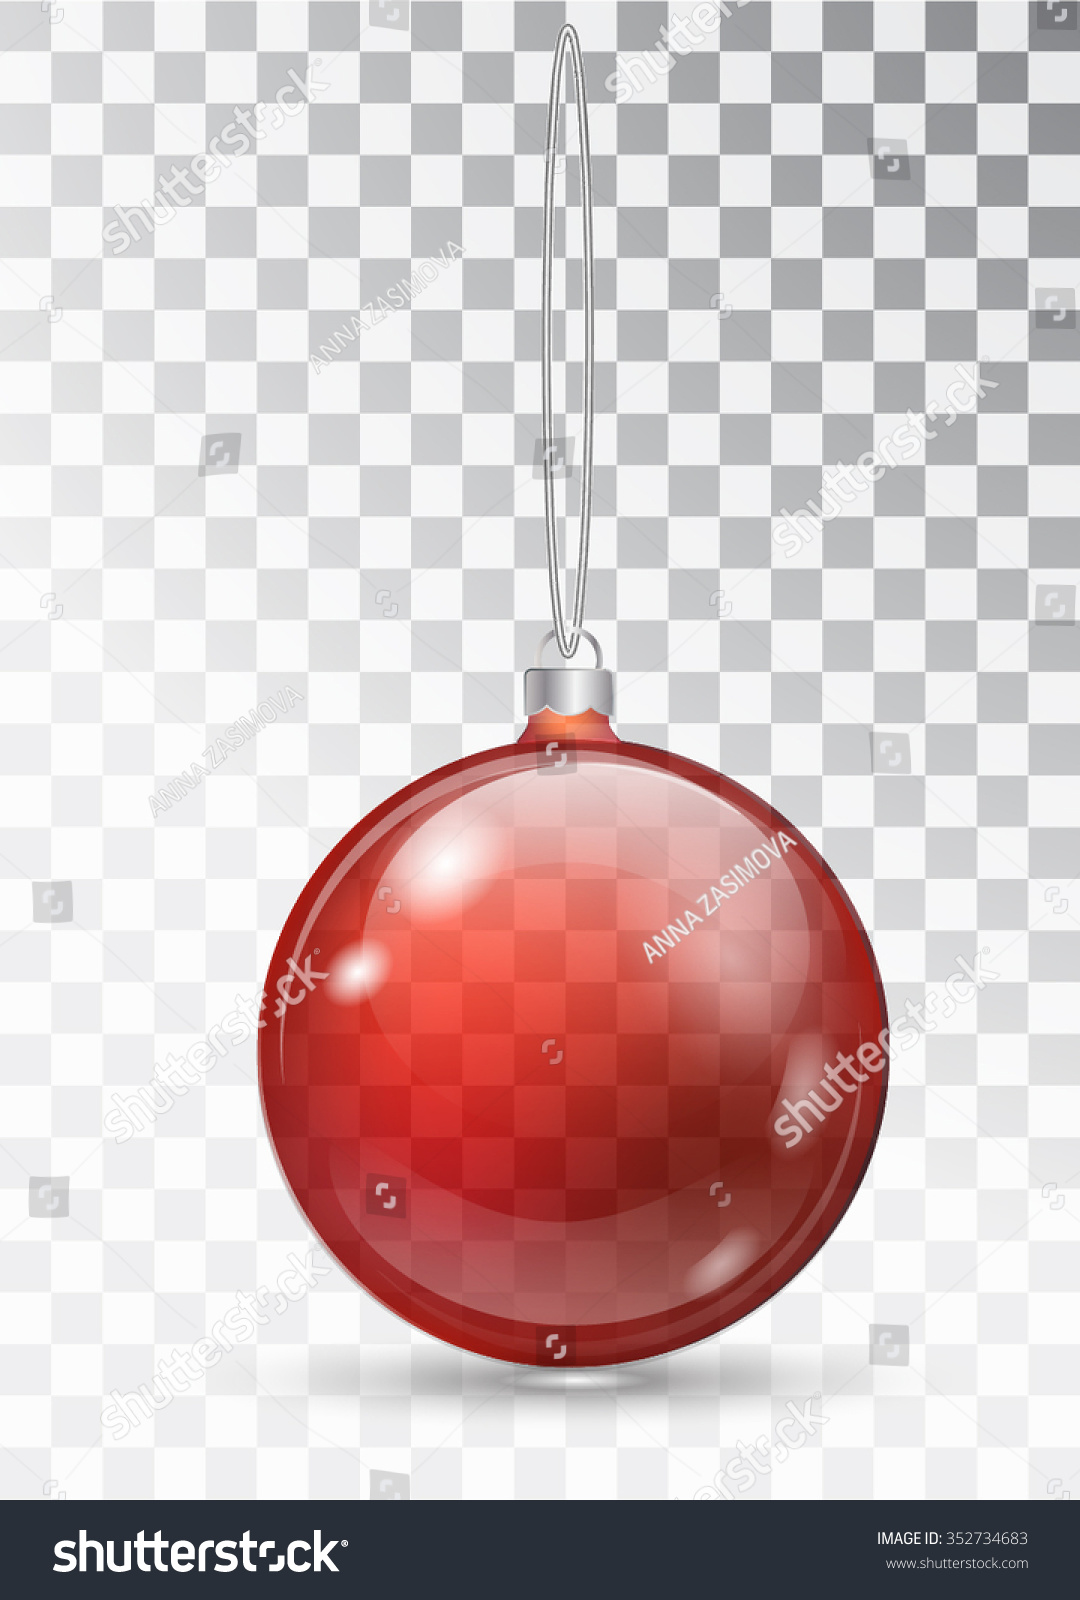 transparent christmas ball glass christmas tree toy red transparent ball isolated elements of - Christmas Transparent